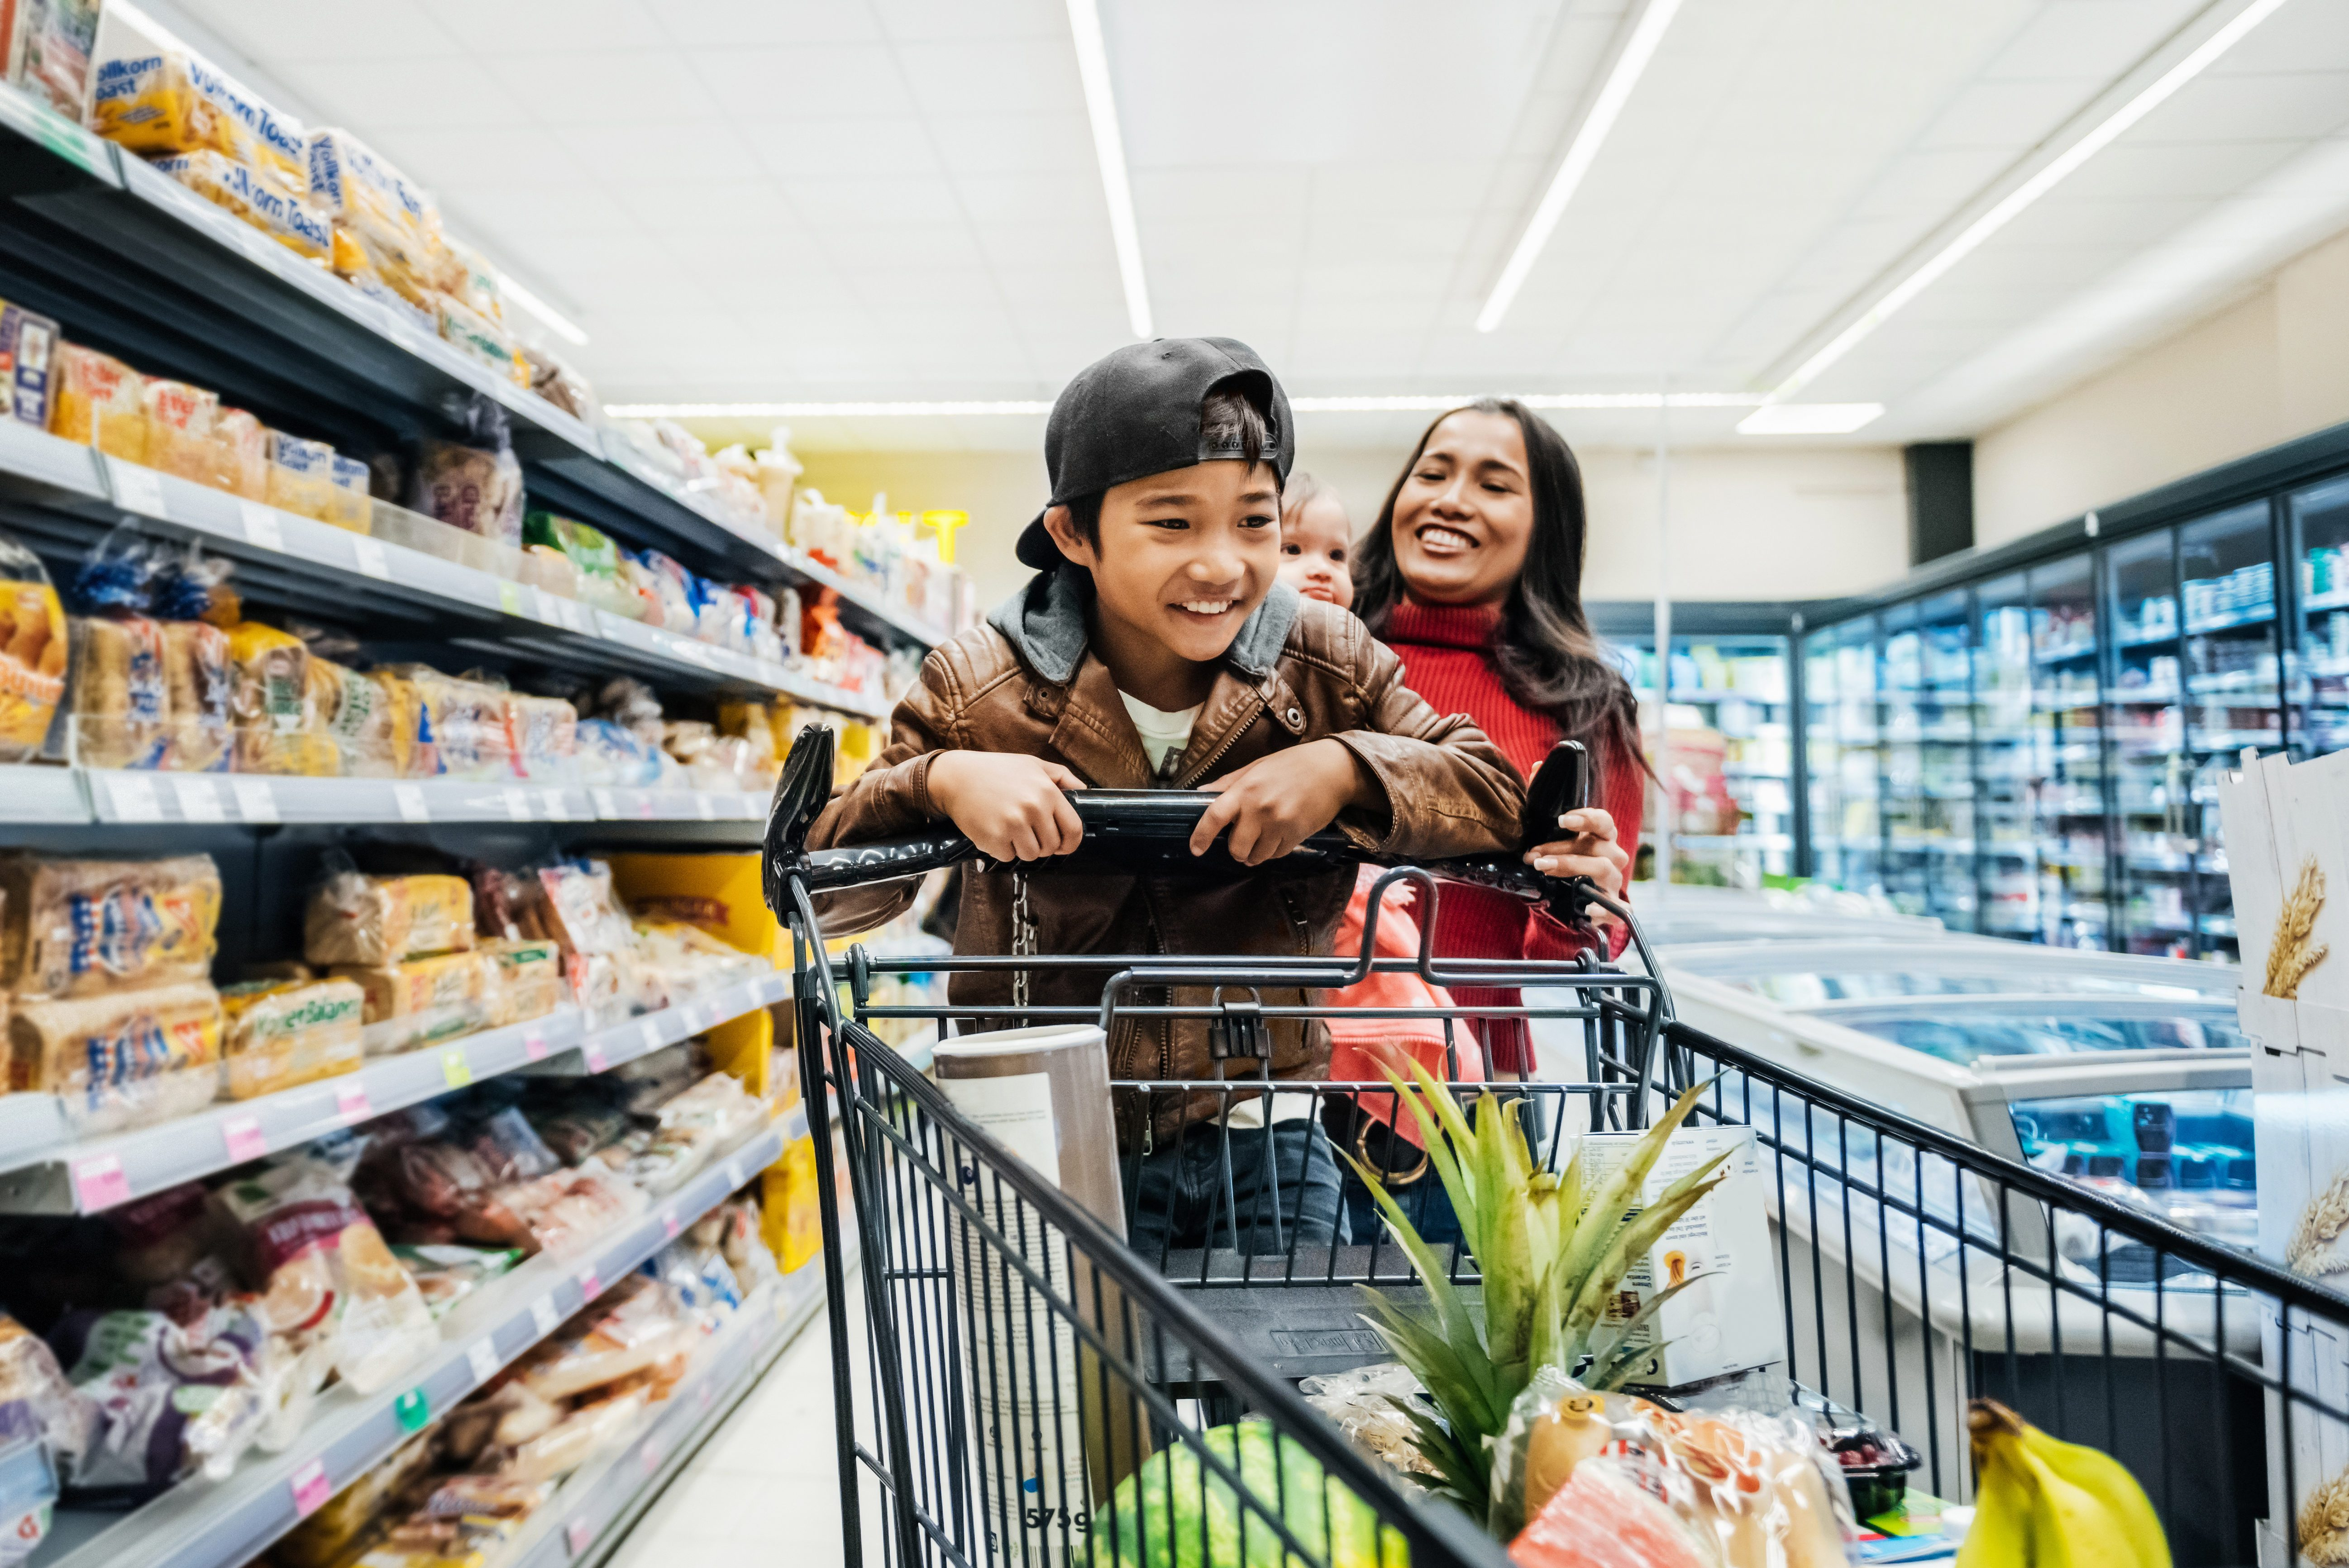 Family Having Fun While Out Buying Groceries.